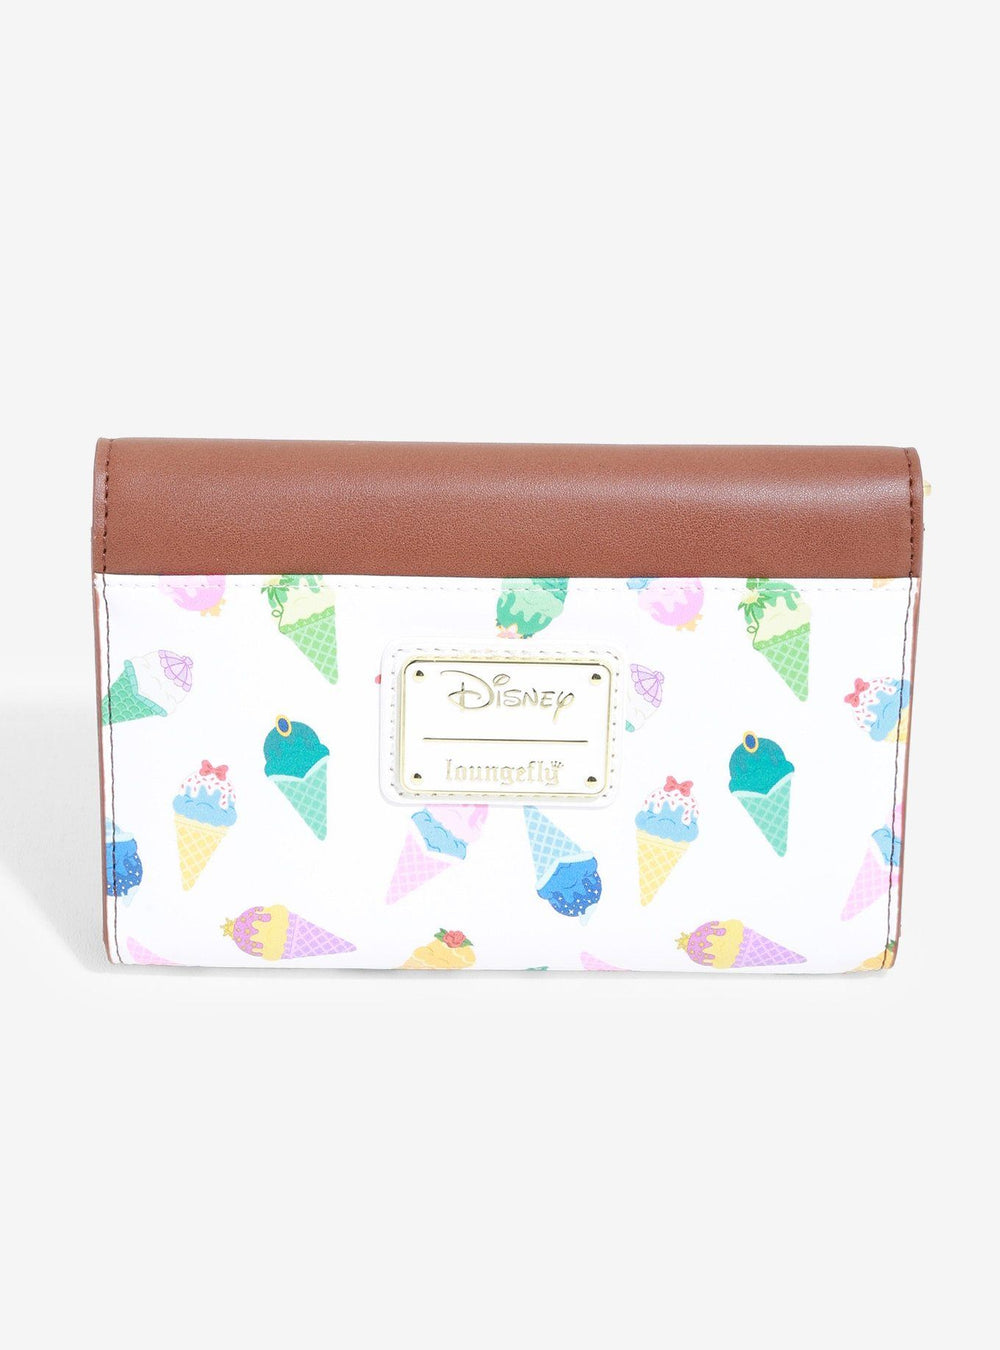 LOUNGEFLY Disney Princess Ice cream Wallet